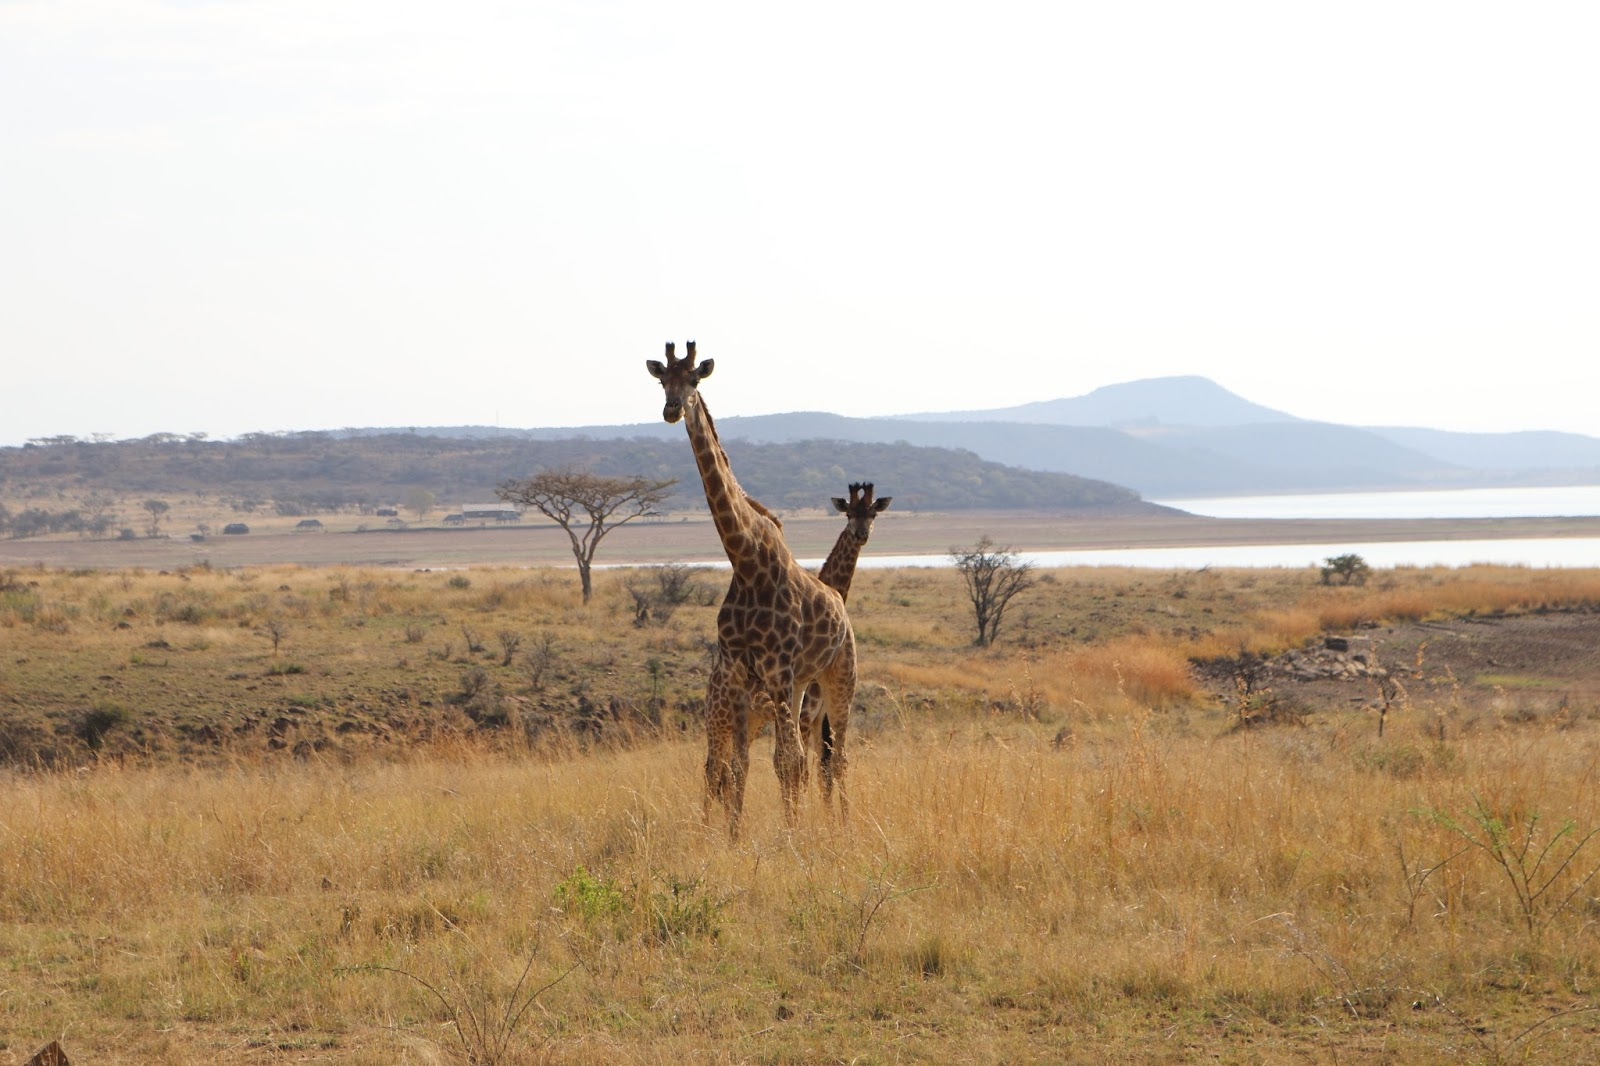 Giraffe in Spioenkop Game Reserve, South Africa